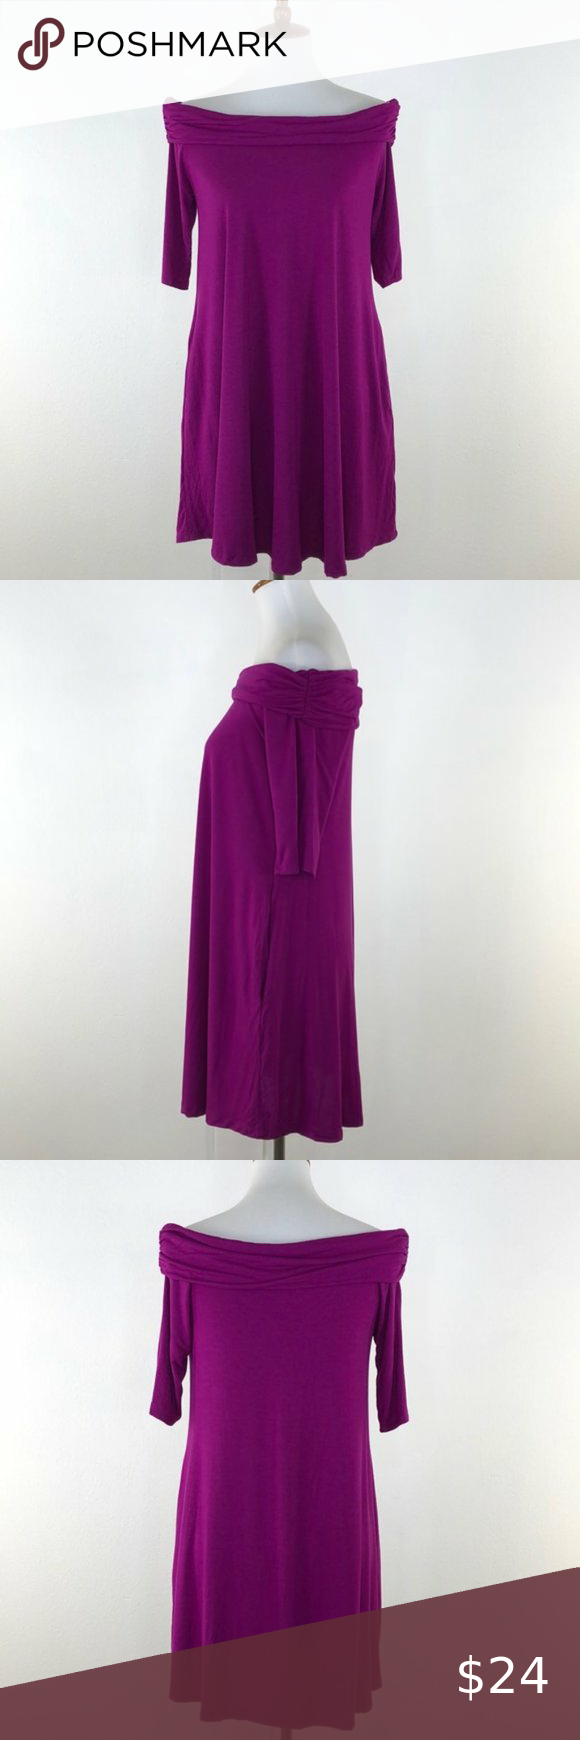 Mitto Shop Purple Off the Shoulder Swing Dress NWT